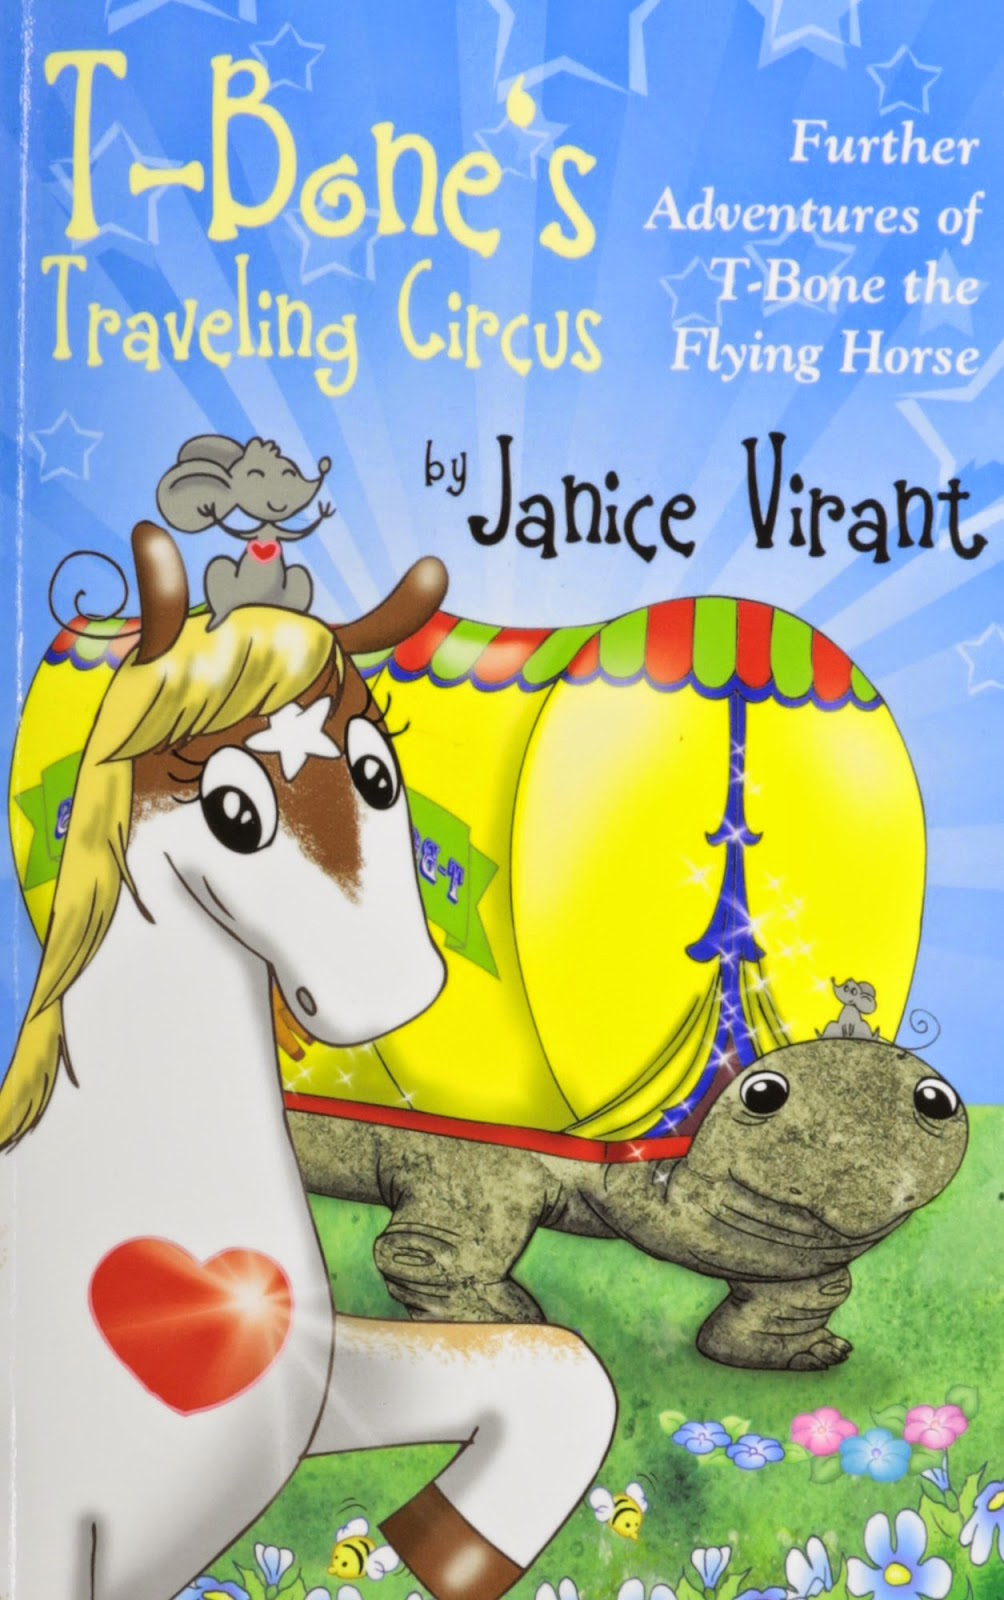 T-Bone's Traveling Circus Book Cover